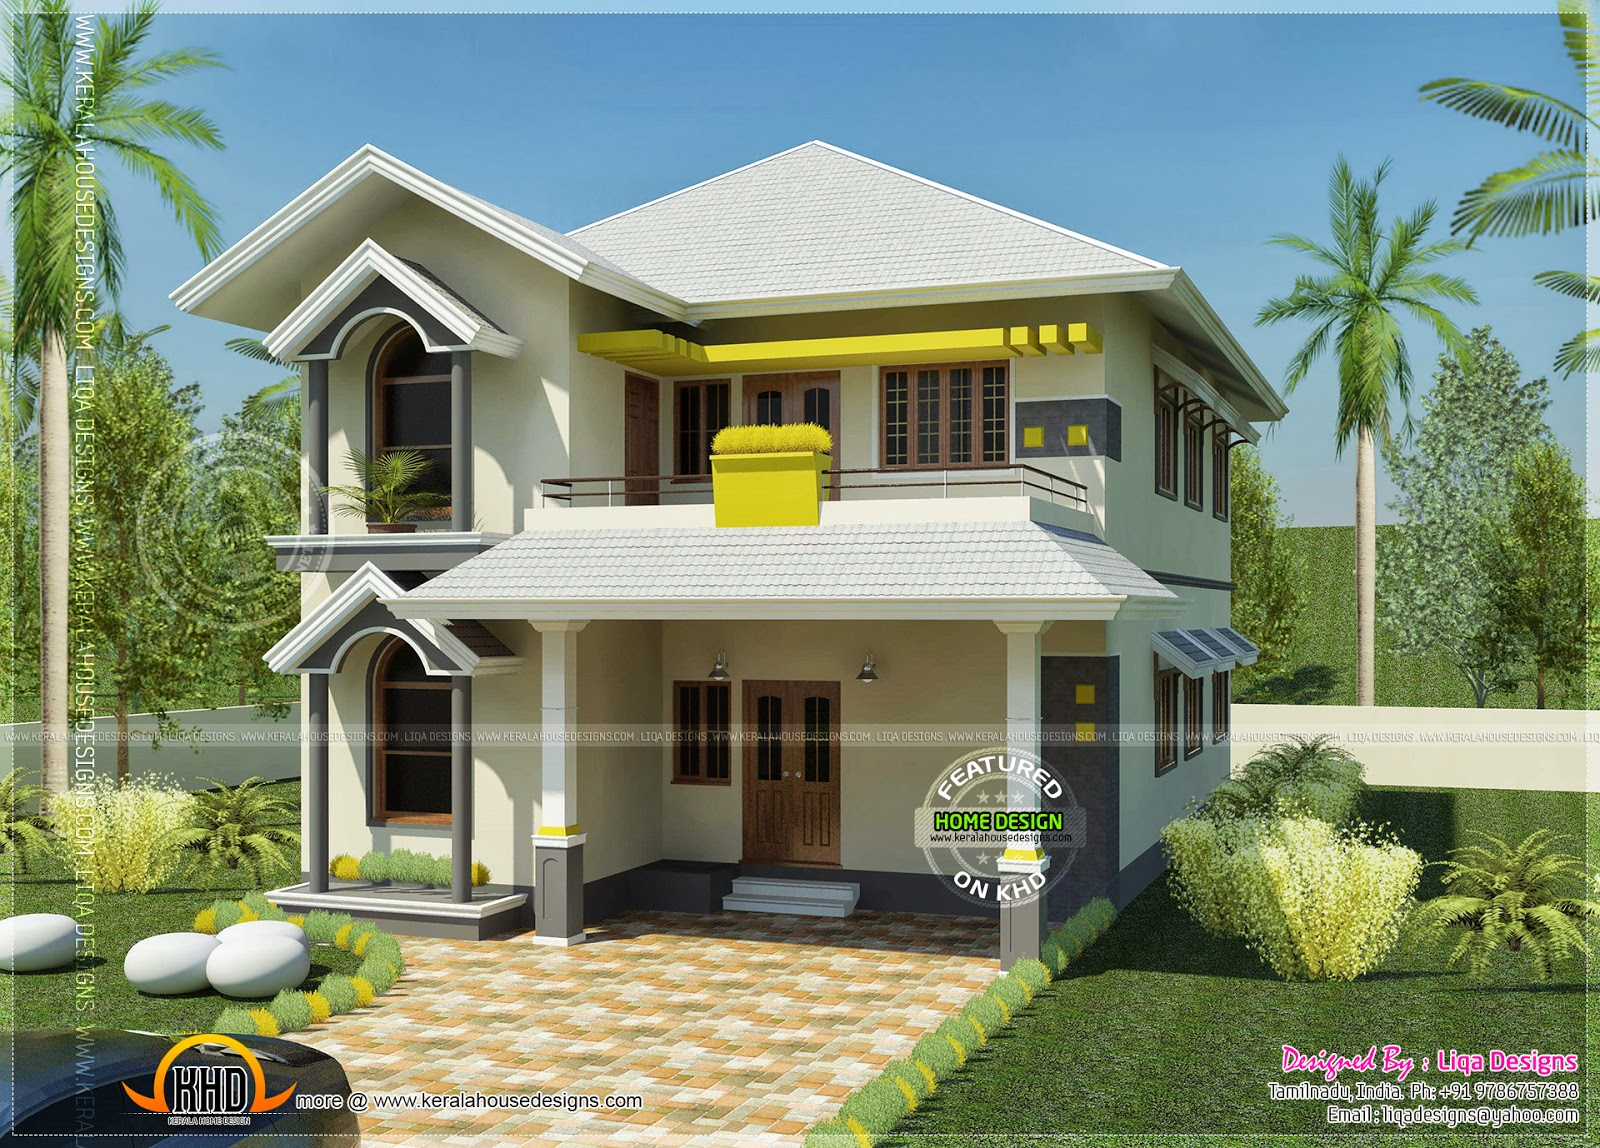 Kerala home design siddu buzz for New small home designs in india